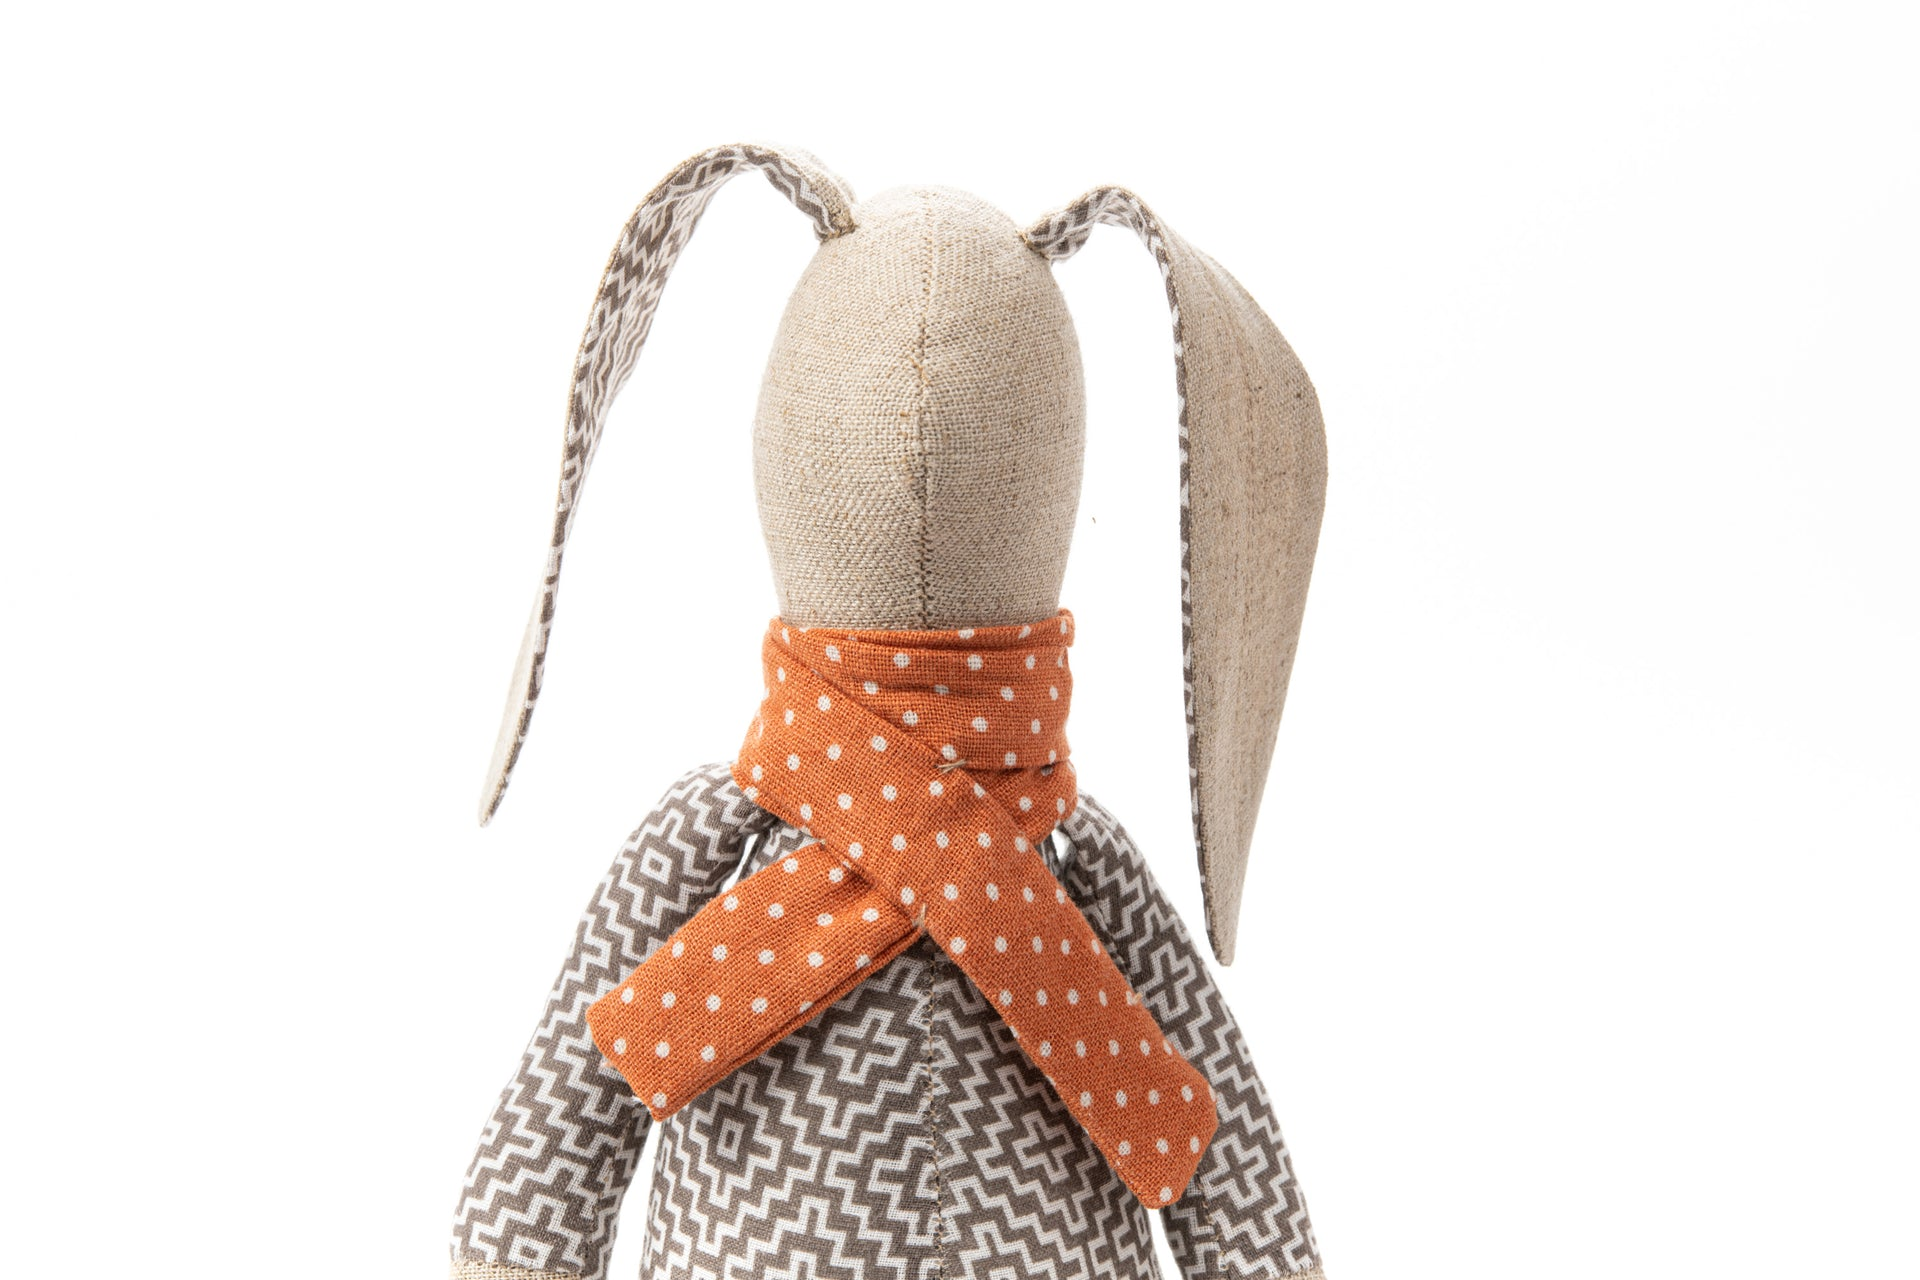 Art doll, Stuffed animal, Rabbit doll, Fabric doll, Ecofriendly gift, Cloth doll, Handmade animal doll, Stuffed bunny, Gender neutral gift